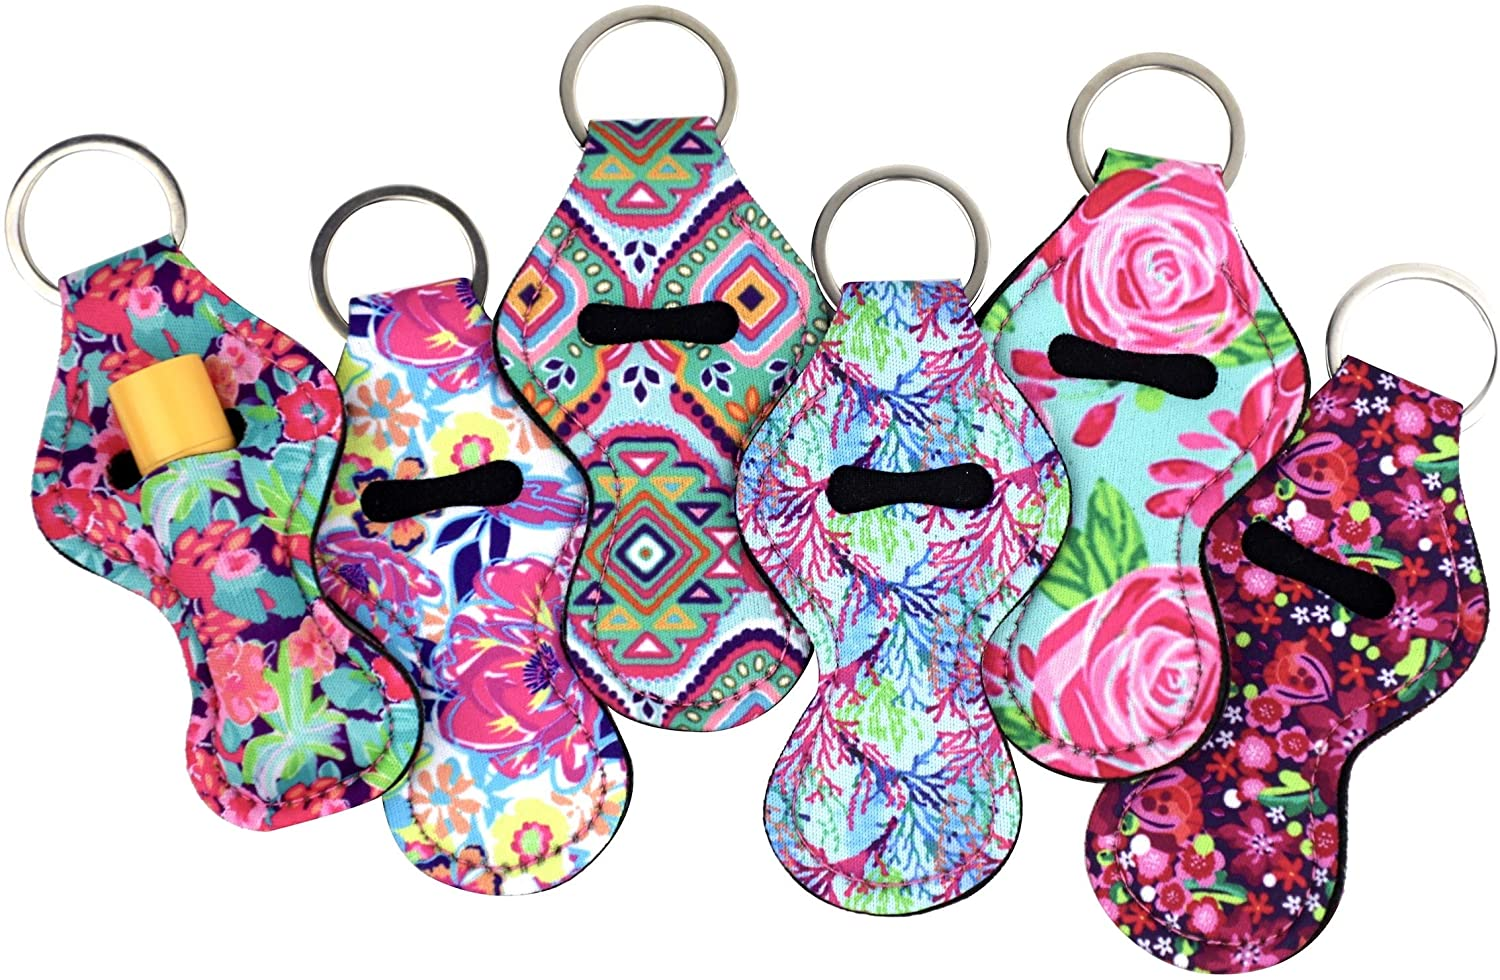 stocking-stuffers-for-women-key-chain